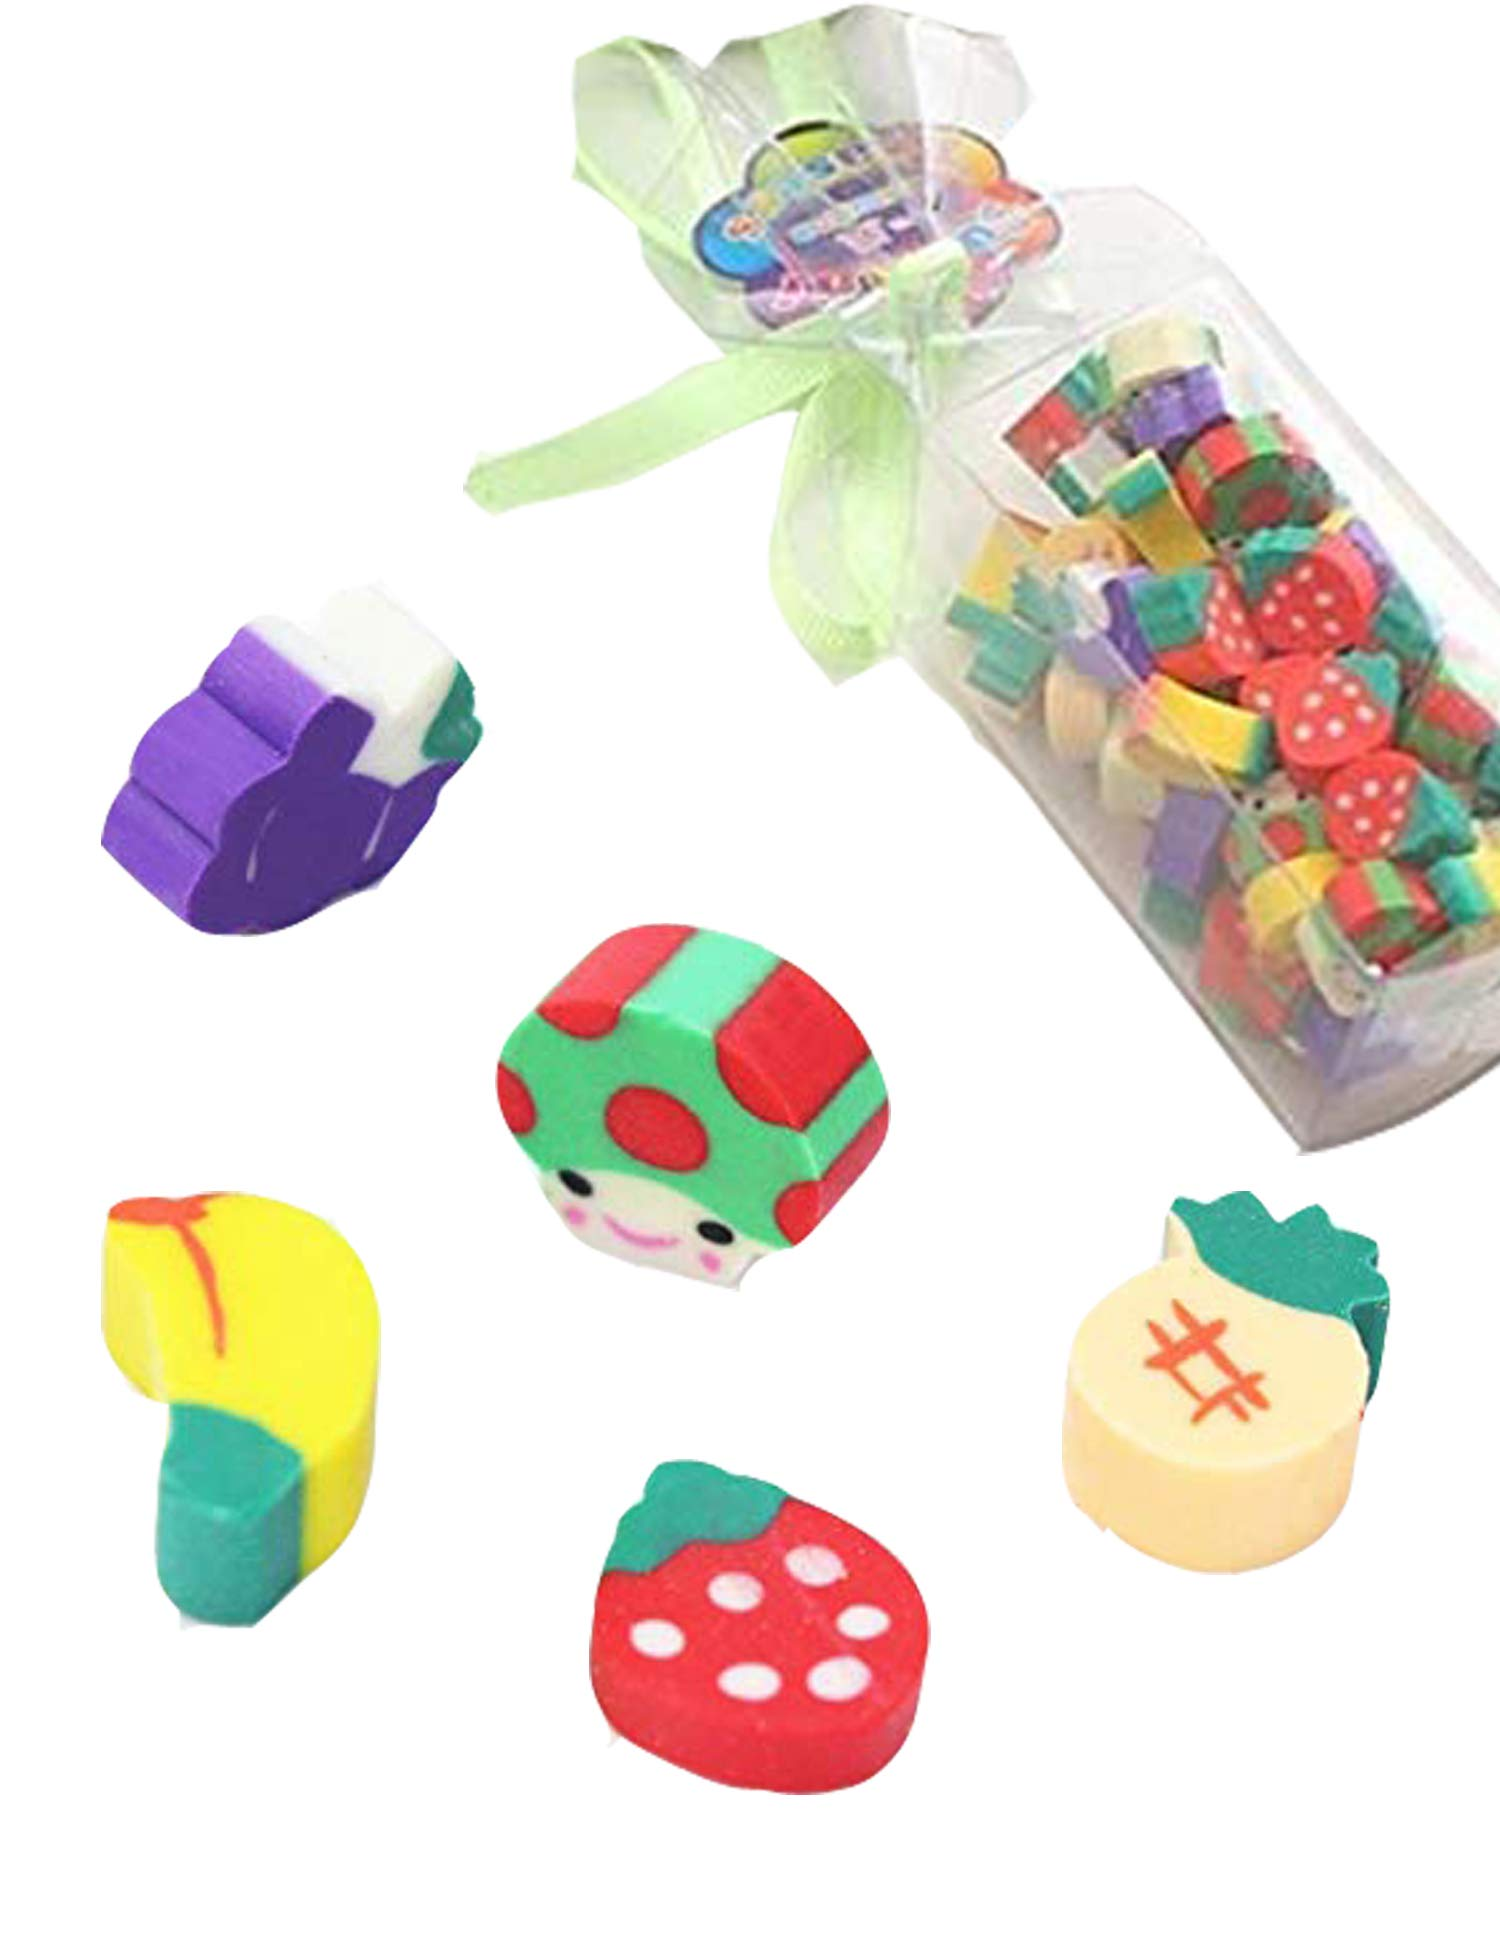 Goodfans 50 Pcs/bag Children Students Casual Cute Mini Fruit Toy Eraser Stationery Tool Cartoon Toy Pen Erasers